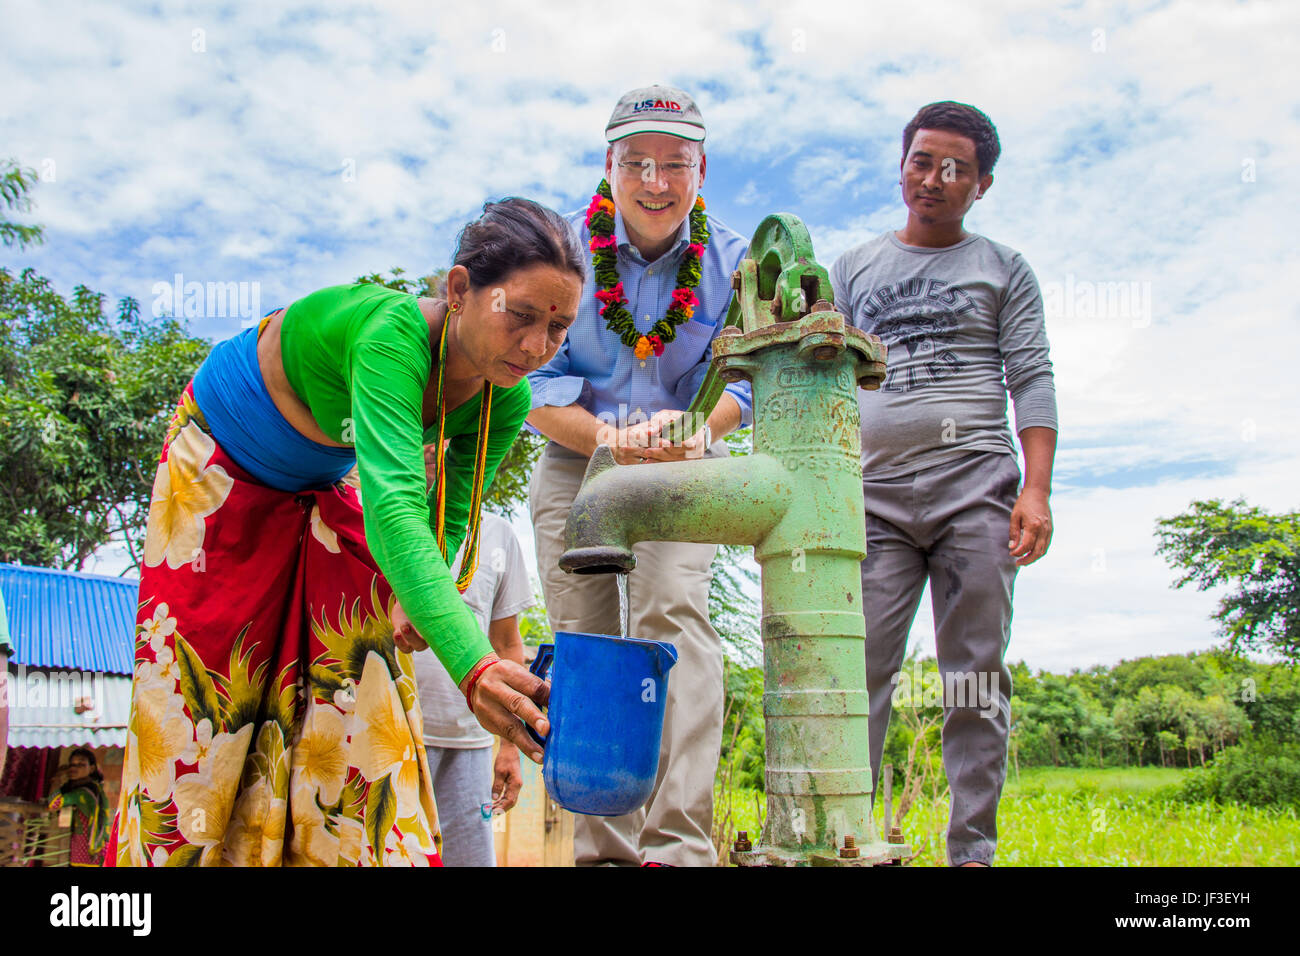 USAID Mission Director Peter Malnak pumping water from a USAID funded community well in the Terai Region of Nepal - Stock Image